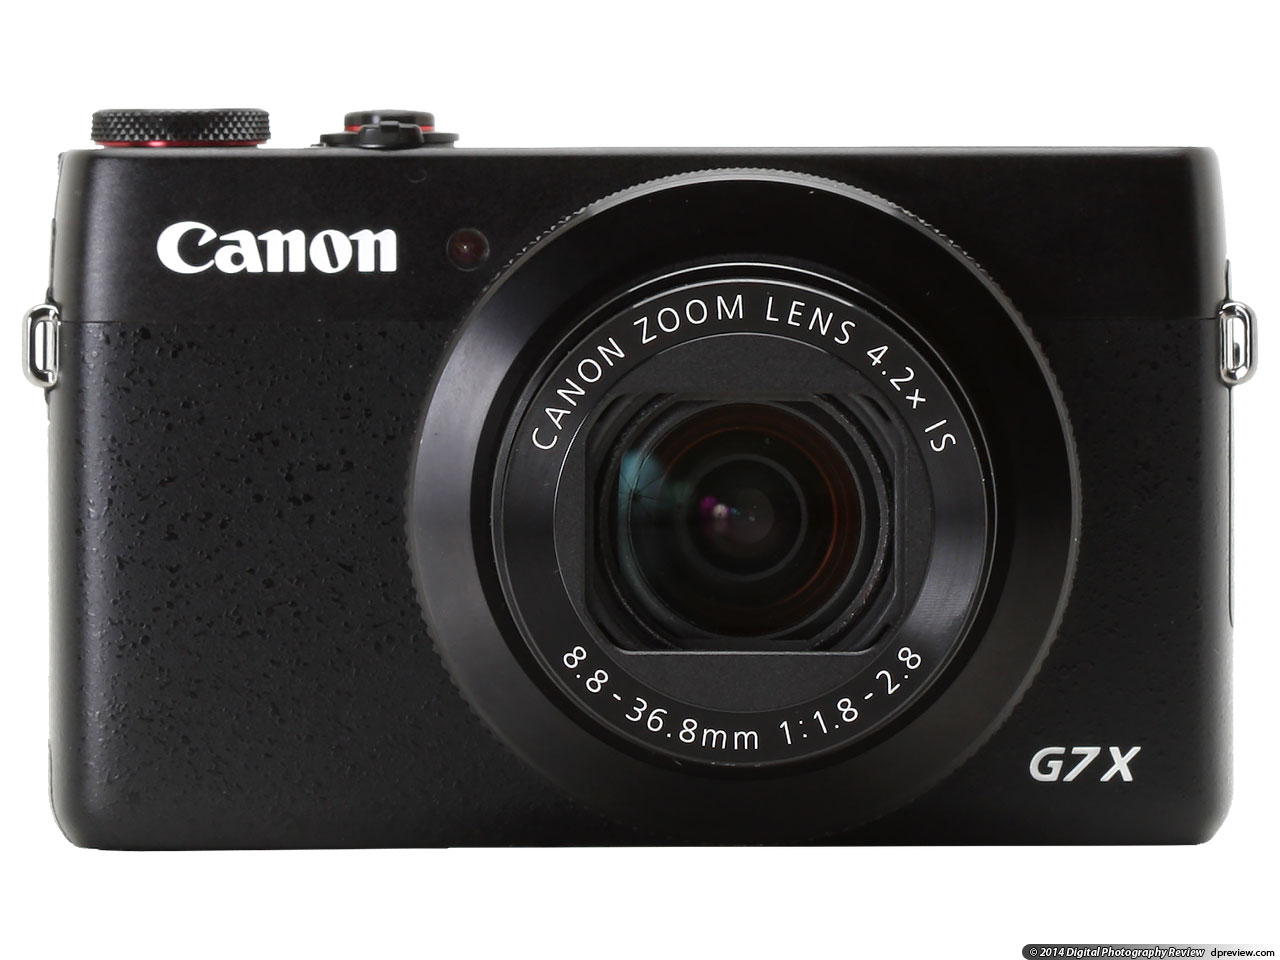 canon powershot g7 x review digital photography review rh dpreview com canon gx7 user manual canon powershot g7 user manual pdf